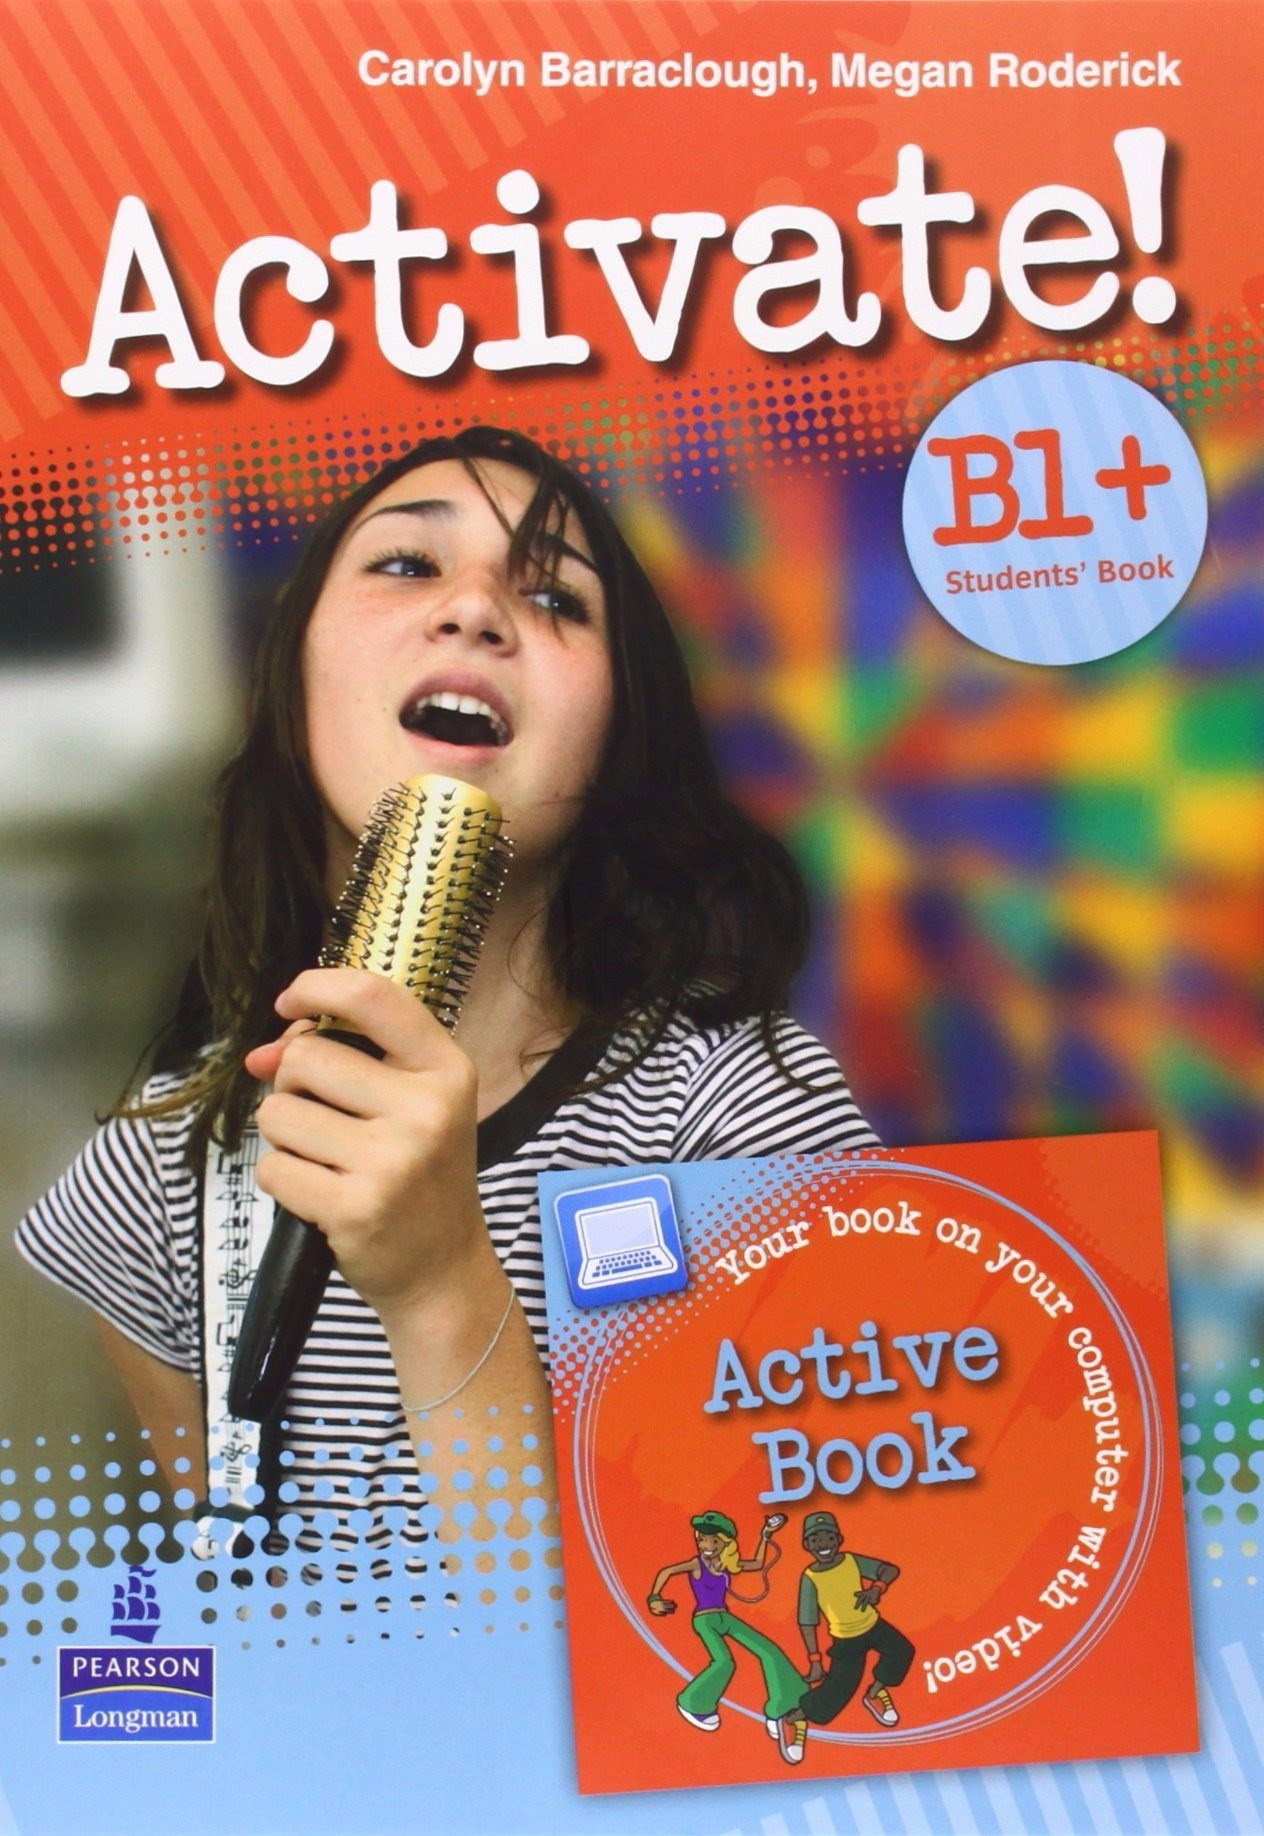 Activate! B1+: Student book with Access Code and Active Book